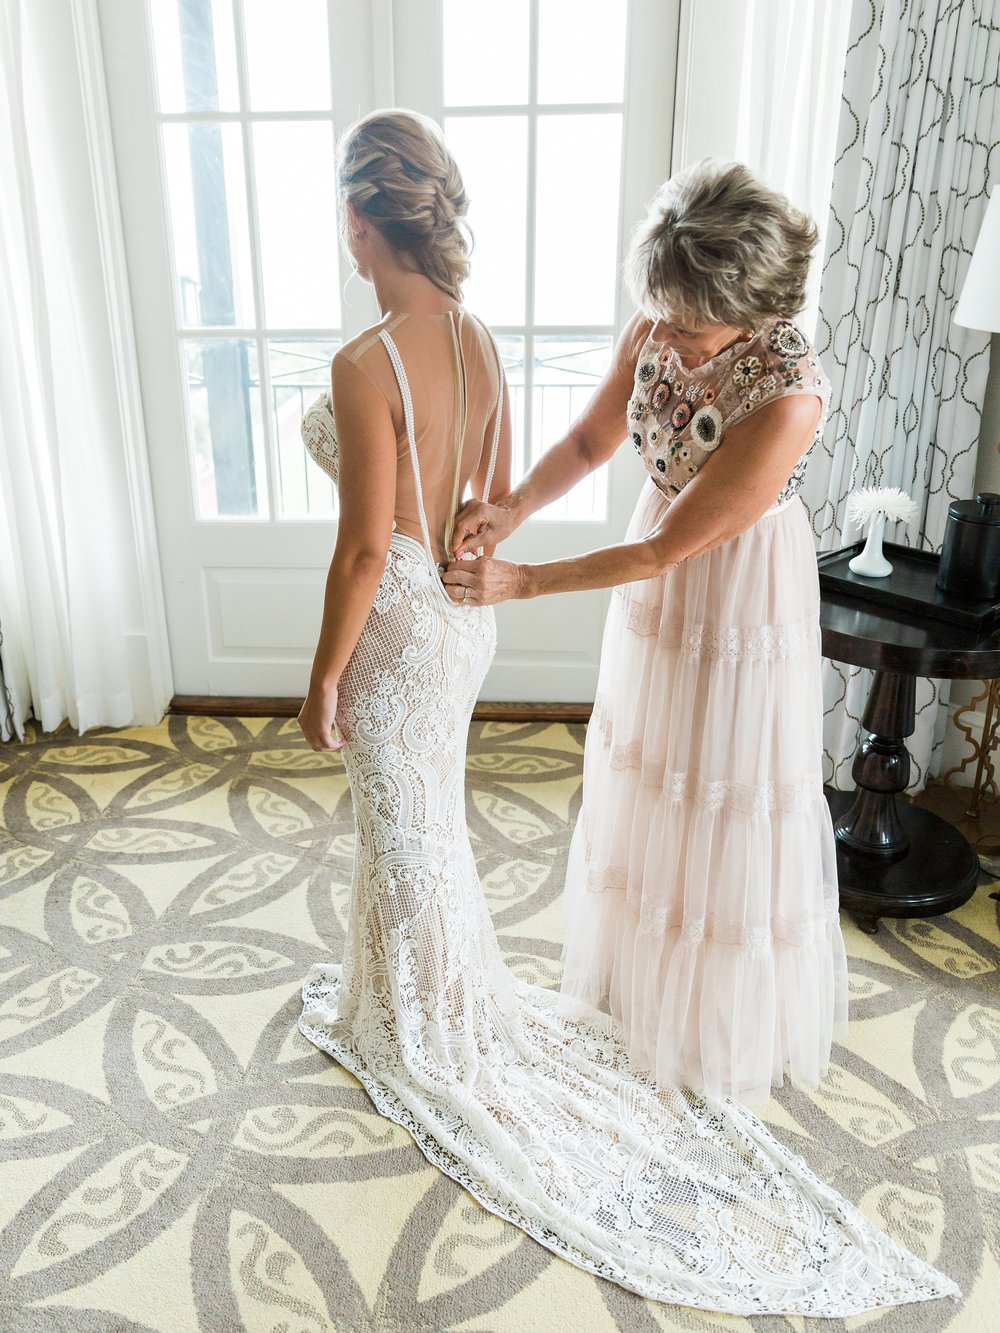 Jessie Barksdale Photography_bride getting dressed with mother